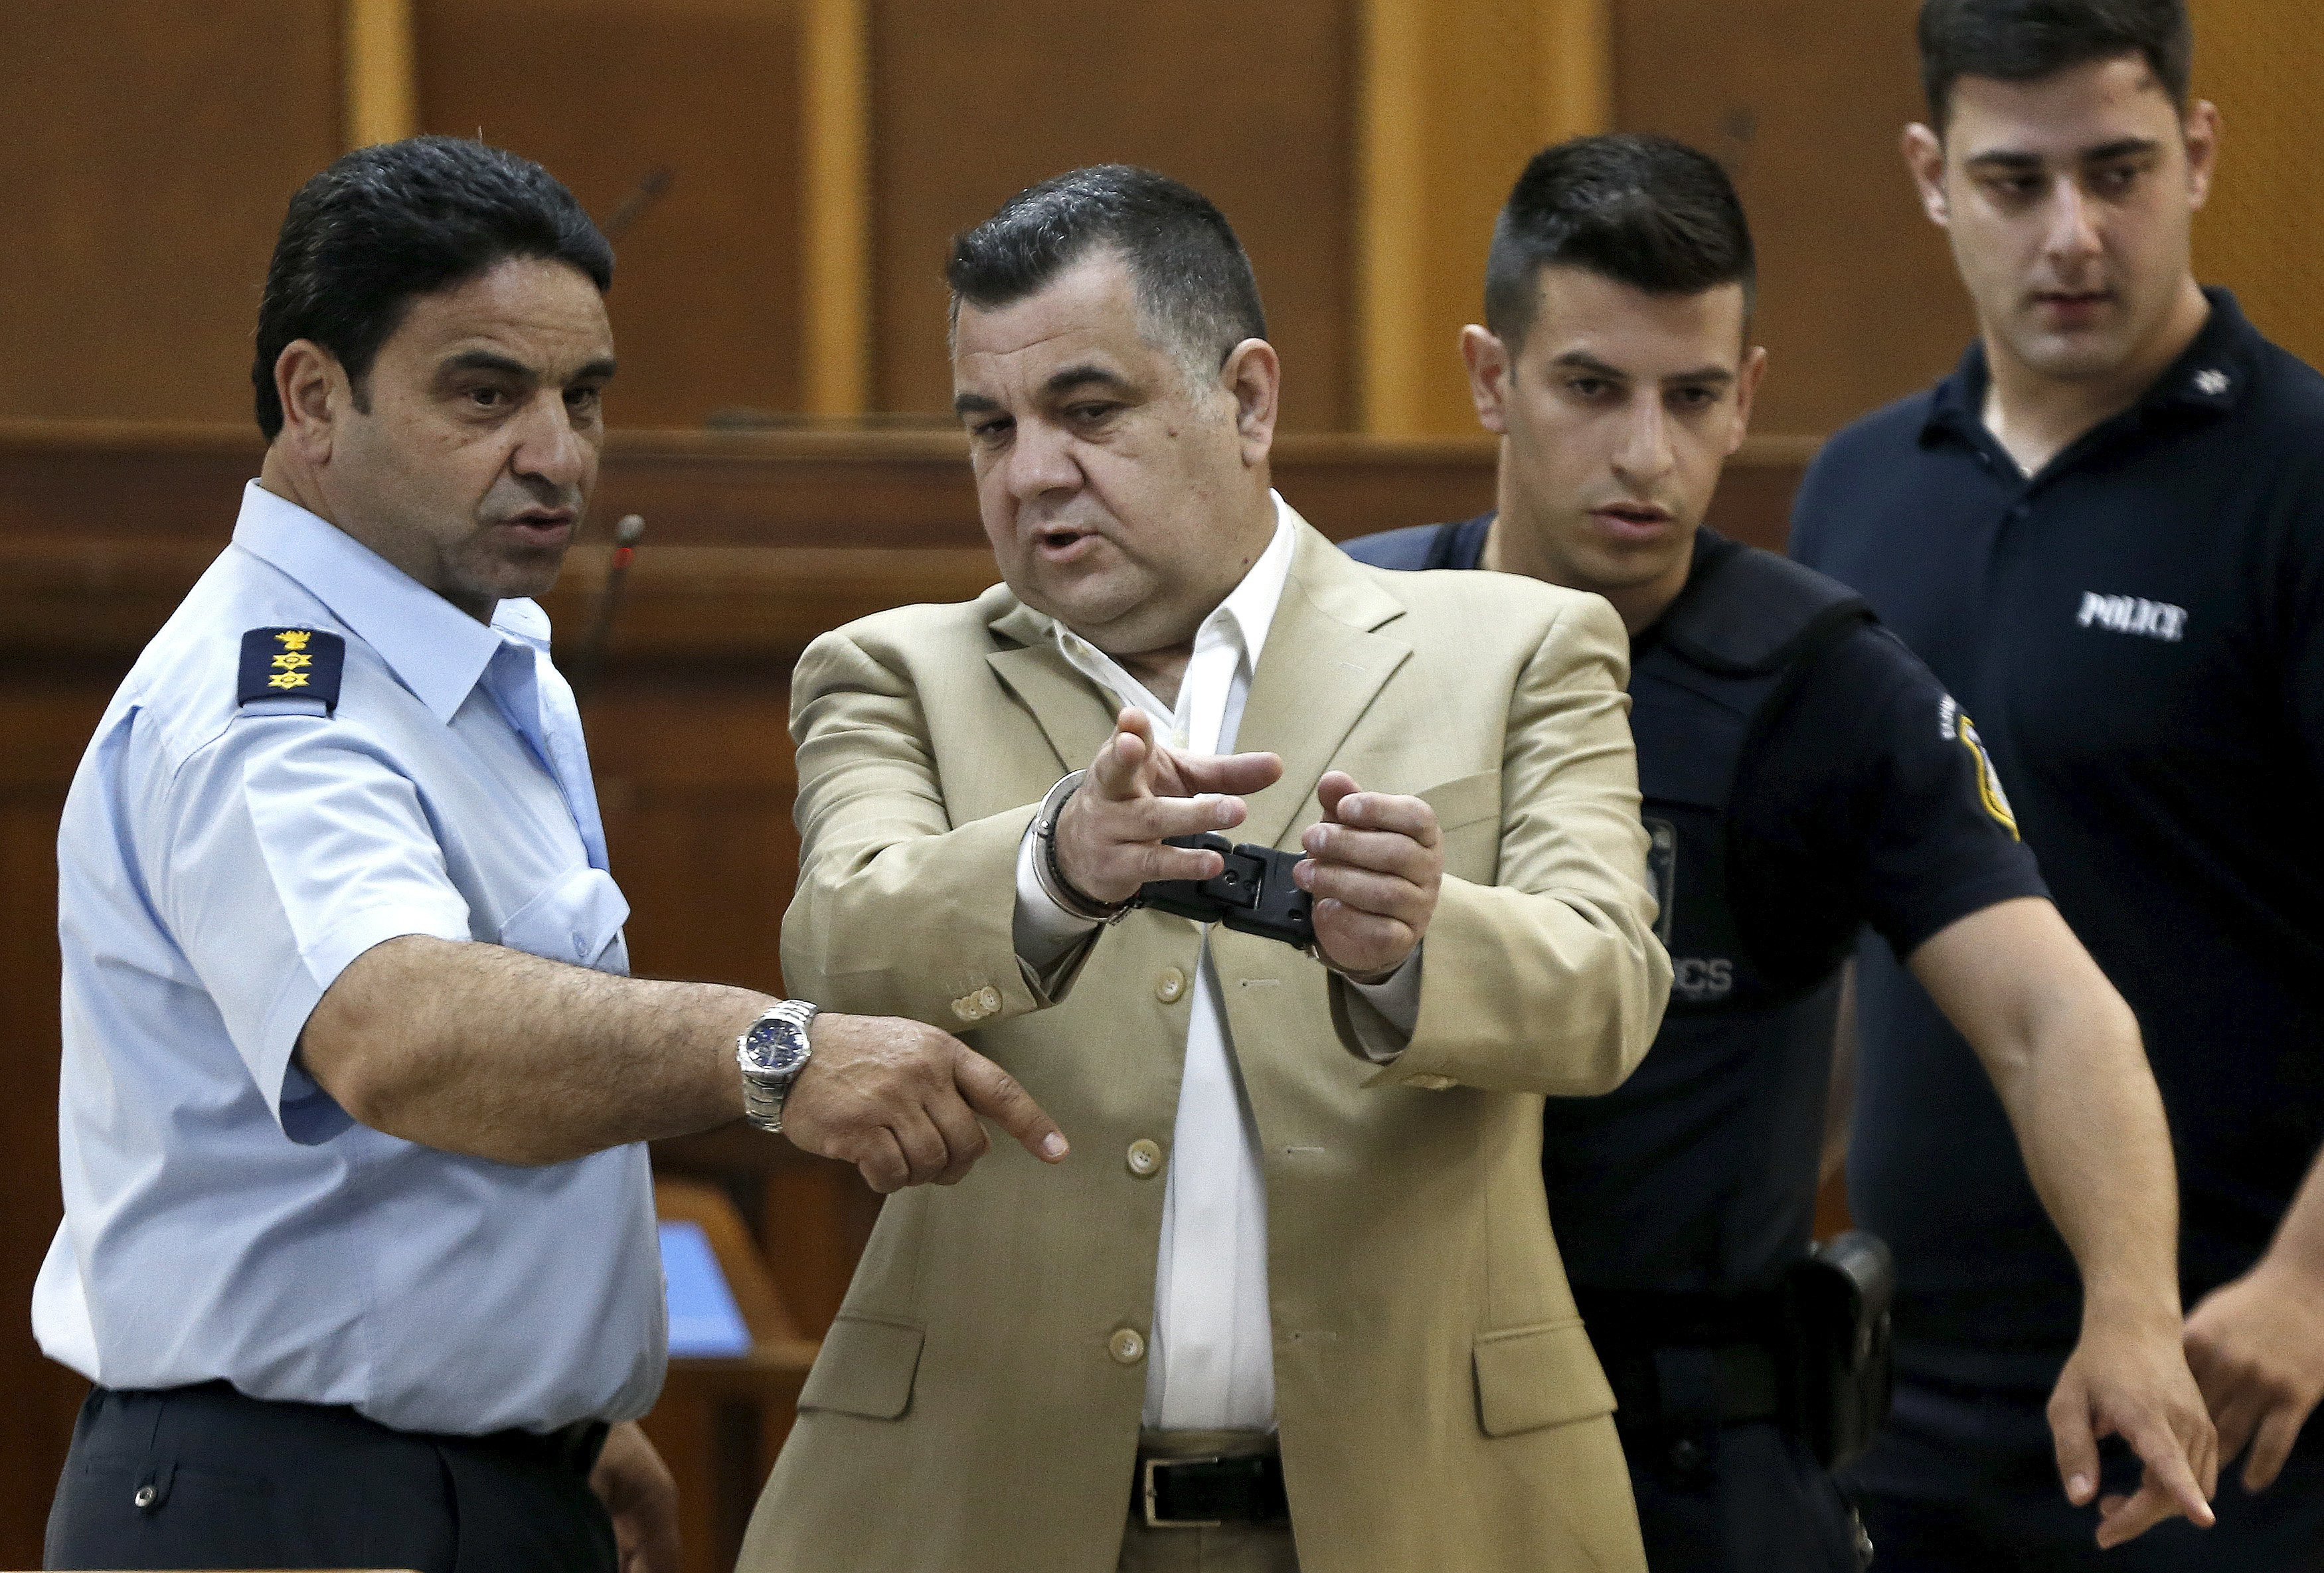 Giorgos Roupakias (C), who is in custody pending trial over the killing of anti-racism Greek rapper Pavlos Fissas, is escorted by police officers at the court room where the trial of members and leaders of Greece's far-right Golden Dawn party takes place, in Koridallos prison, near Athens, May 7, 2015. Party leader Nikos Mihaloliakos and more than a dozen top figures in Golden Dawn were arrested on charges of founding and participating in a criminal organisation following the killing of an anti-fascism rapper in 2013 by a party supporter. REUTERS/Alkis Konstantinidis